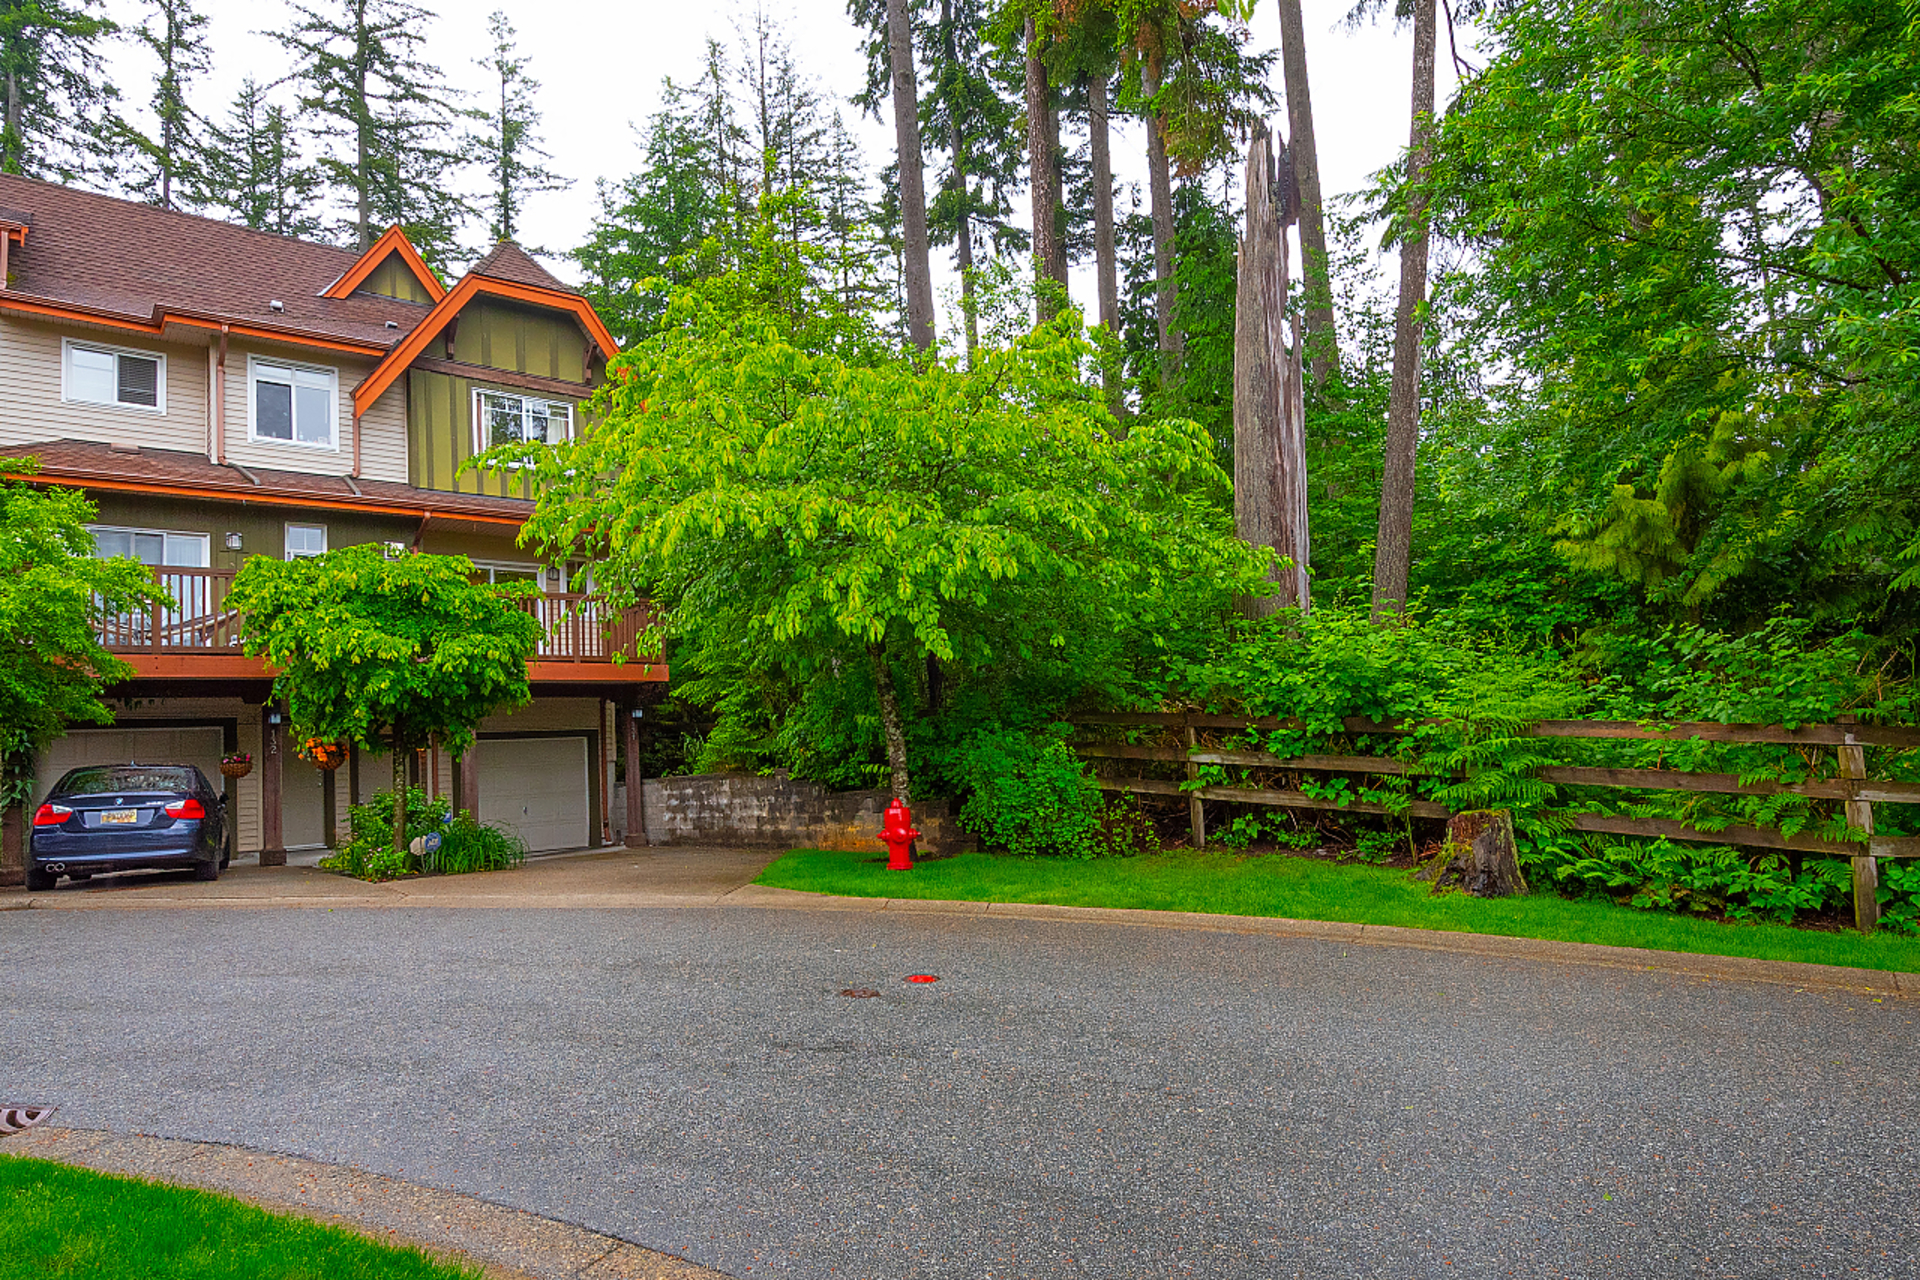 033 at 131 - 2000 Panorama Drive, Heritage Woods PM, Port Moody